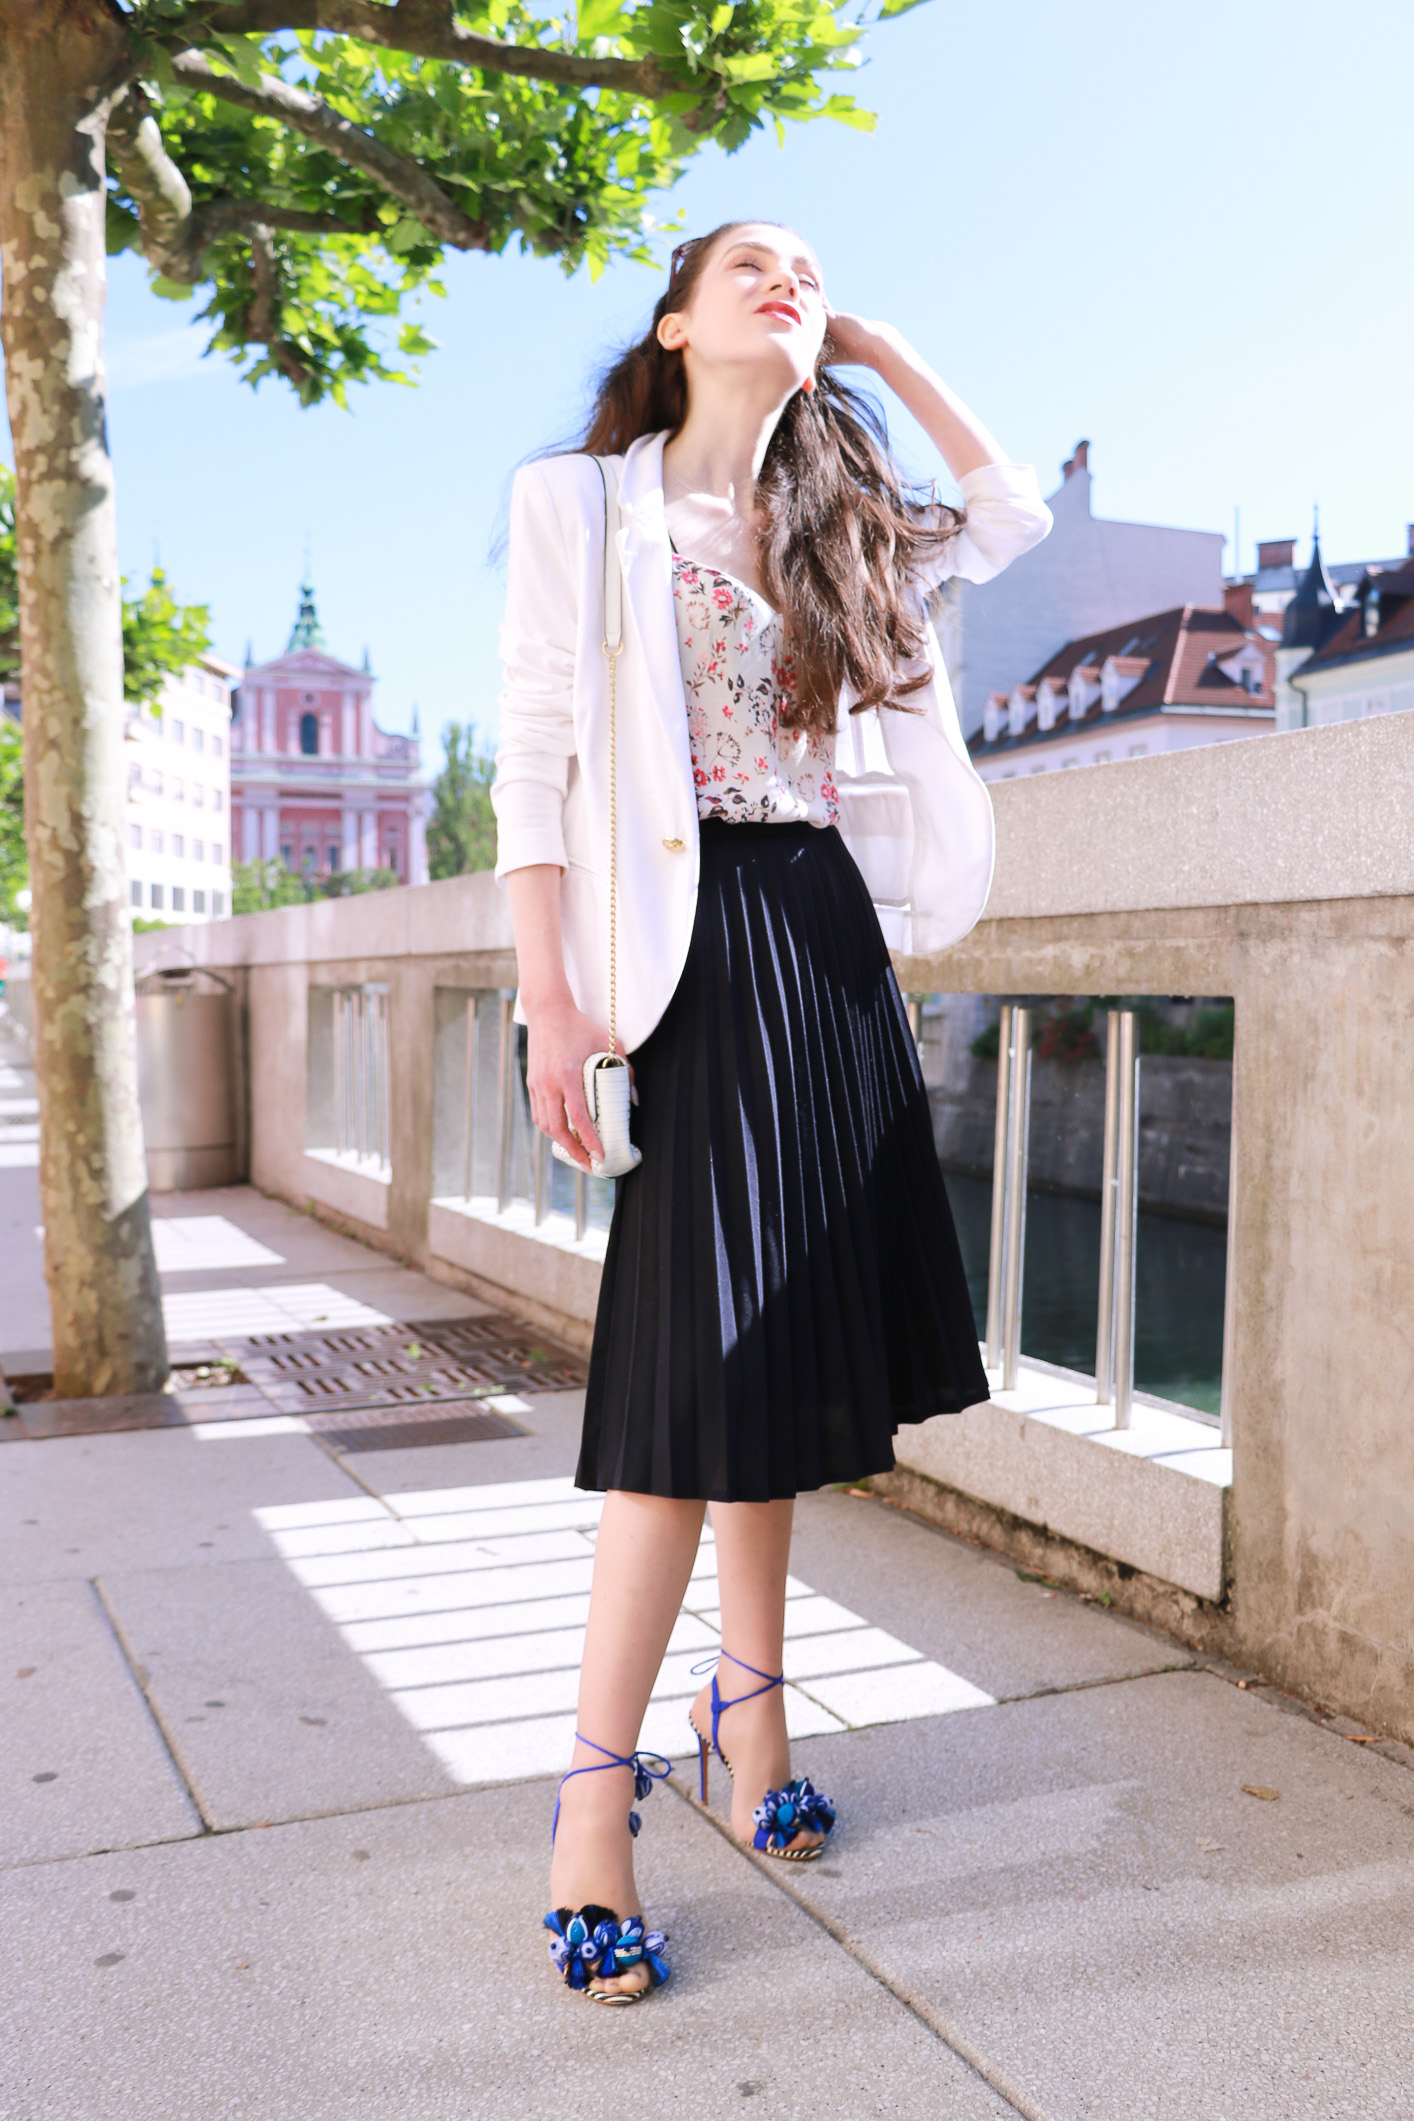 Fashion blogger Veronika Lipar of Brunette From Wall Street sharing how to wear black vintage pleated midi skirt, blue Tropicana tasseled beaded sandals from Aquazzura, floral top, and white blazer for a chic street style look